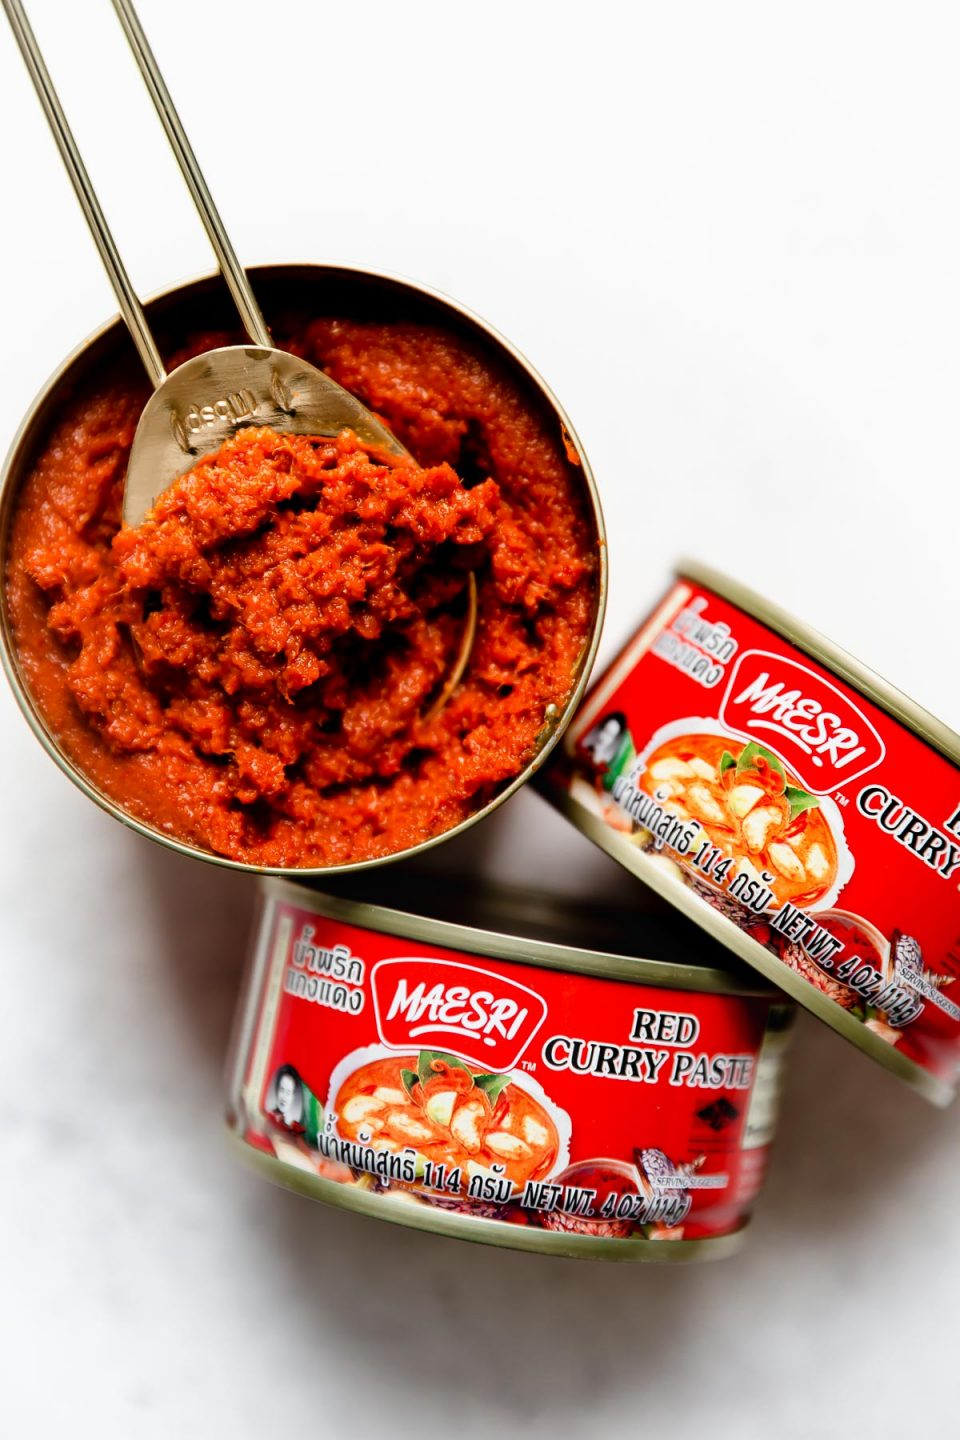 The best Thai Red Curry paste - Maesri curry paste